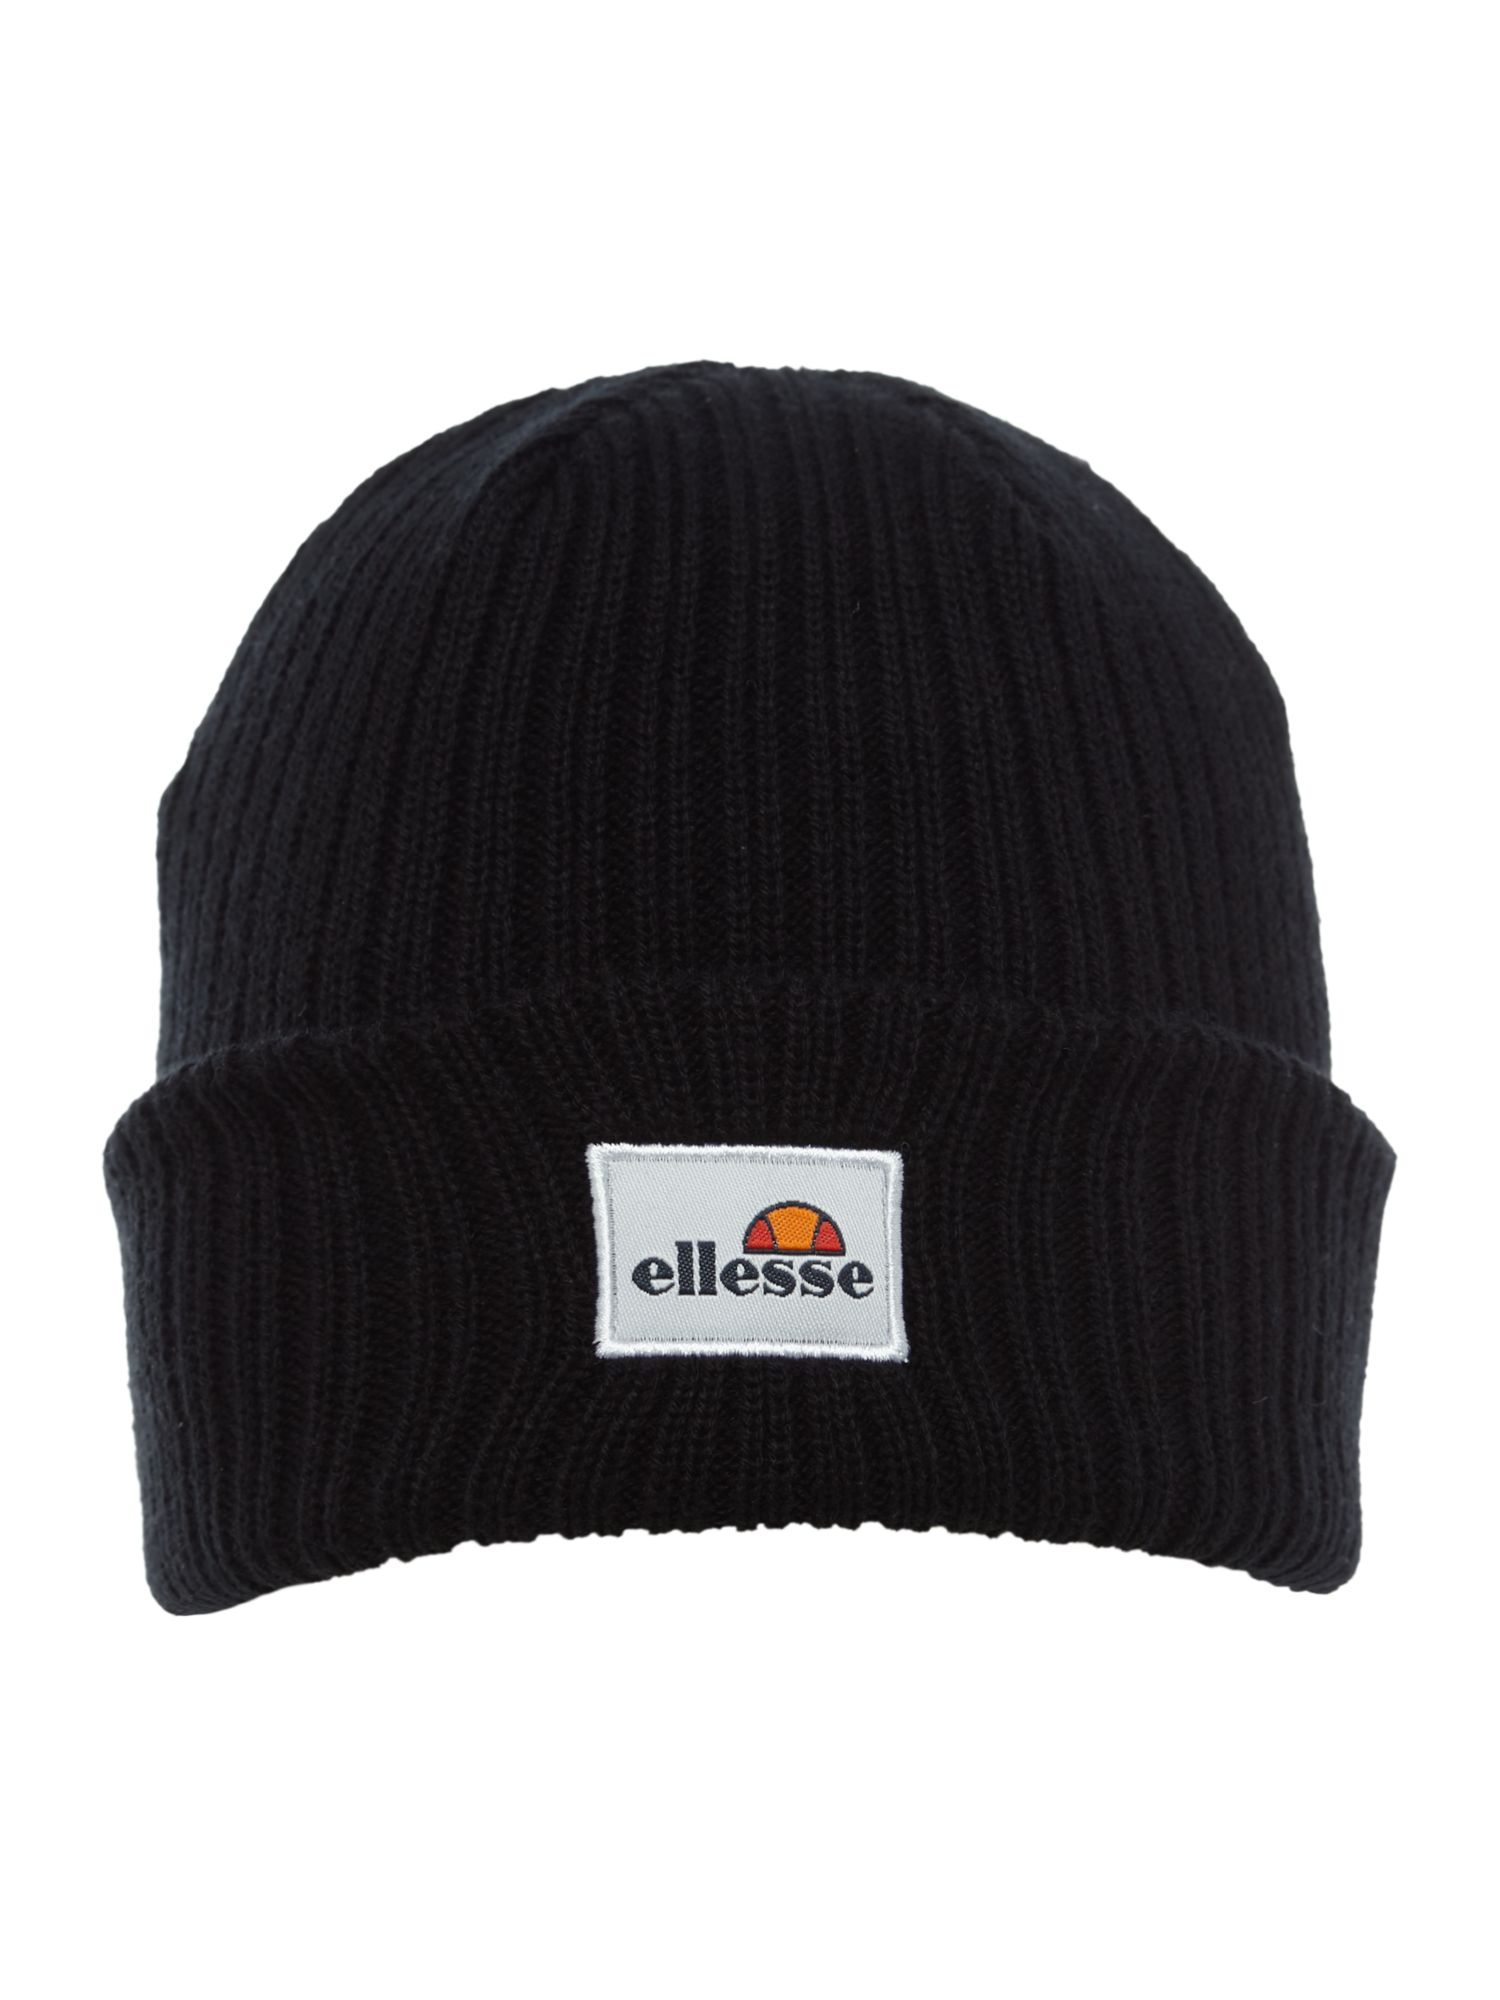 Ellesse Wicker logo beanie, Black